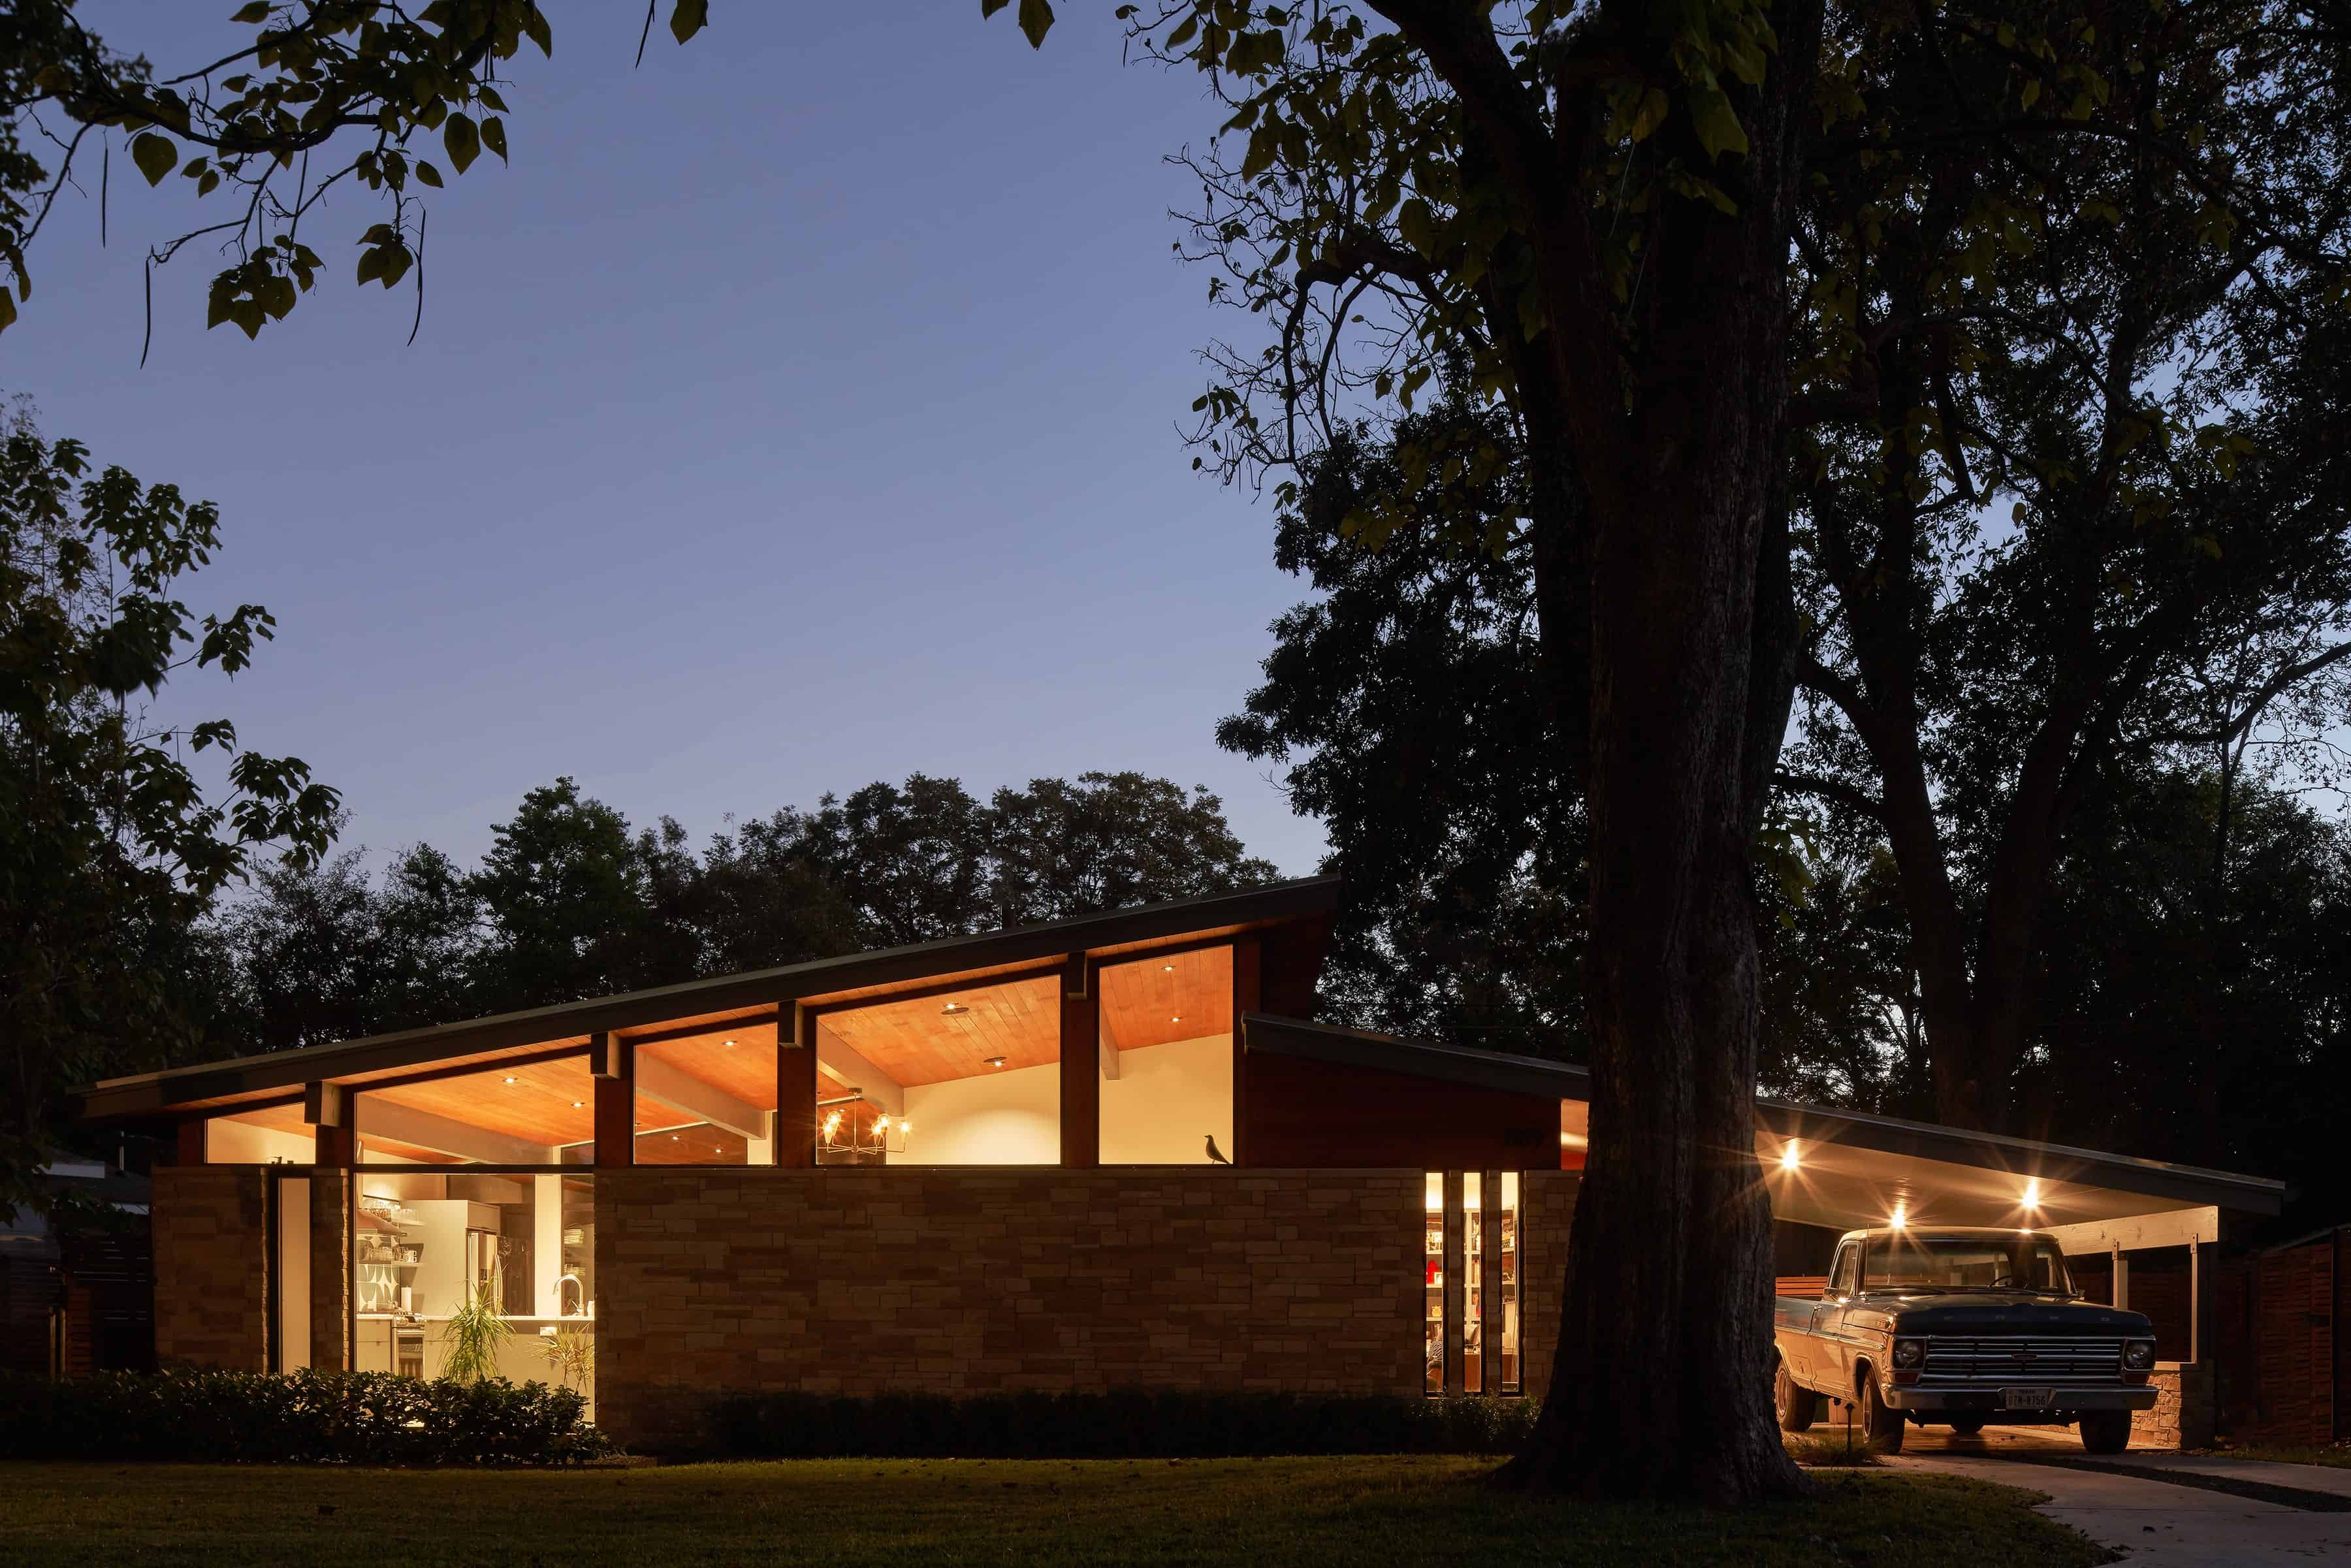 House exterior at night of the Re-Open House designed by Matt Fajkus Architecture.